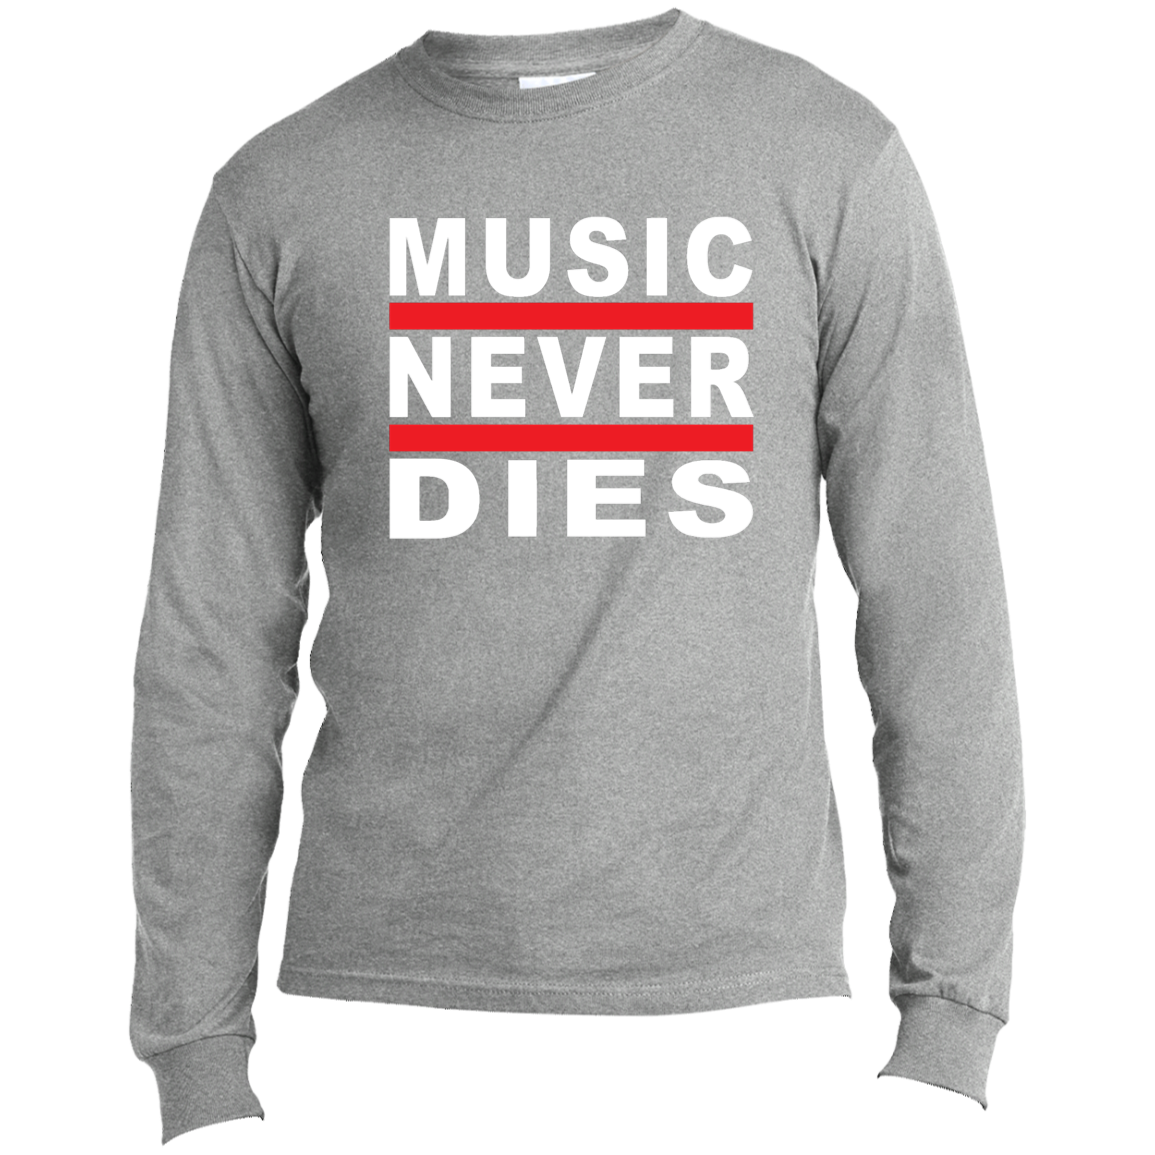 Music Never Dies LS Made in the US T-Shirt